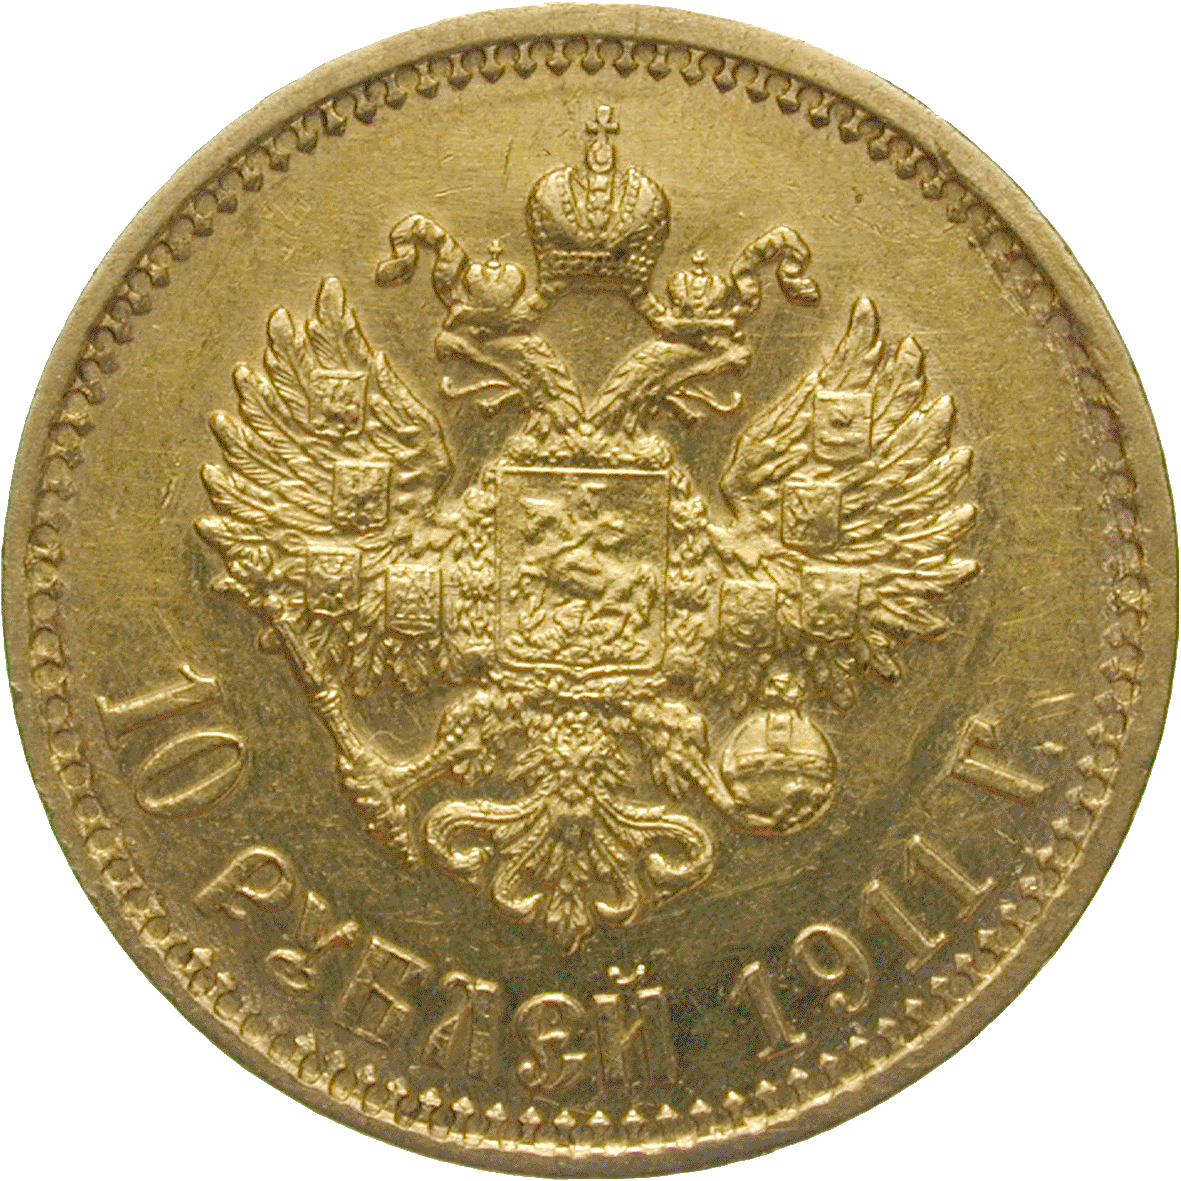 Russian Empire, Nicholas II 10 Rubles 1911 (reverse)